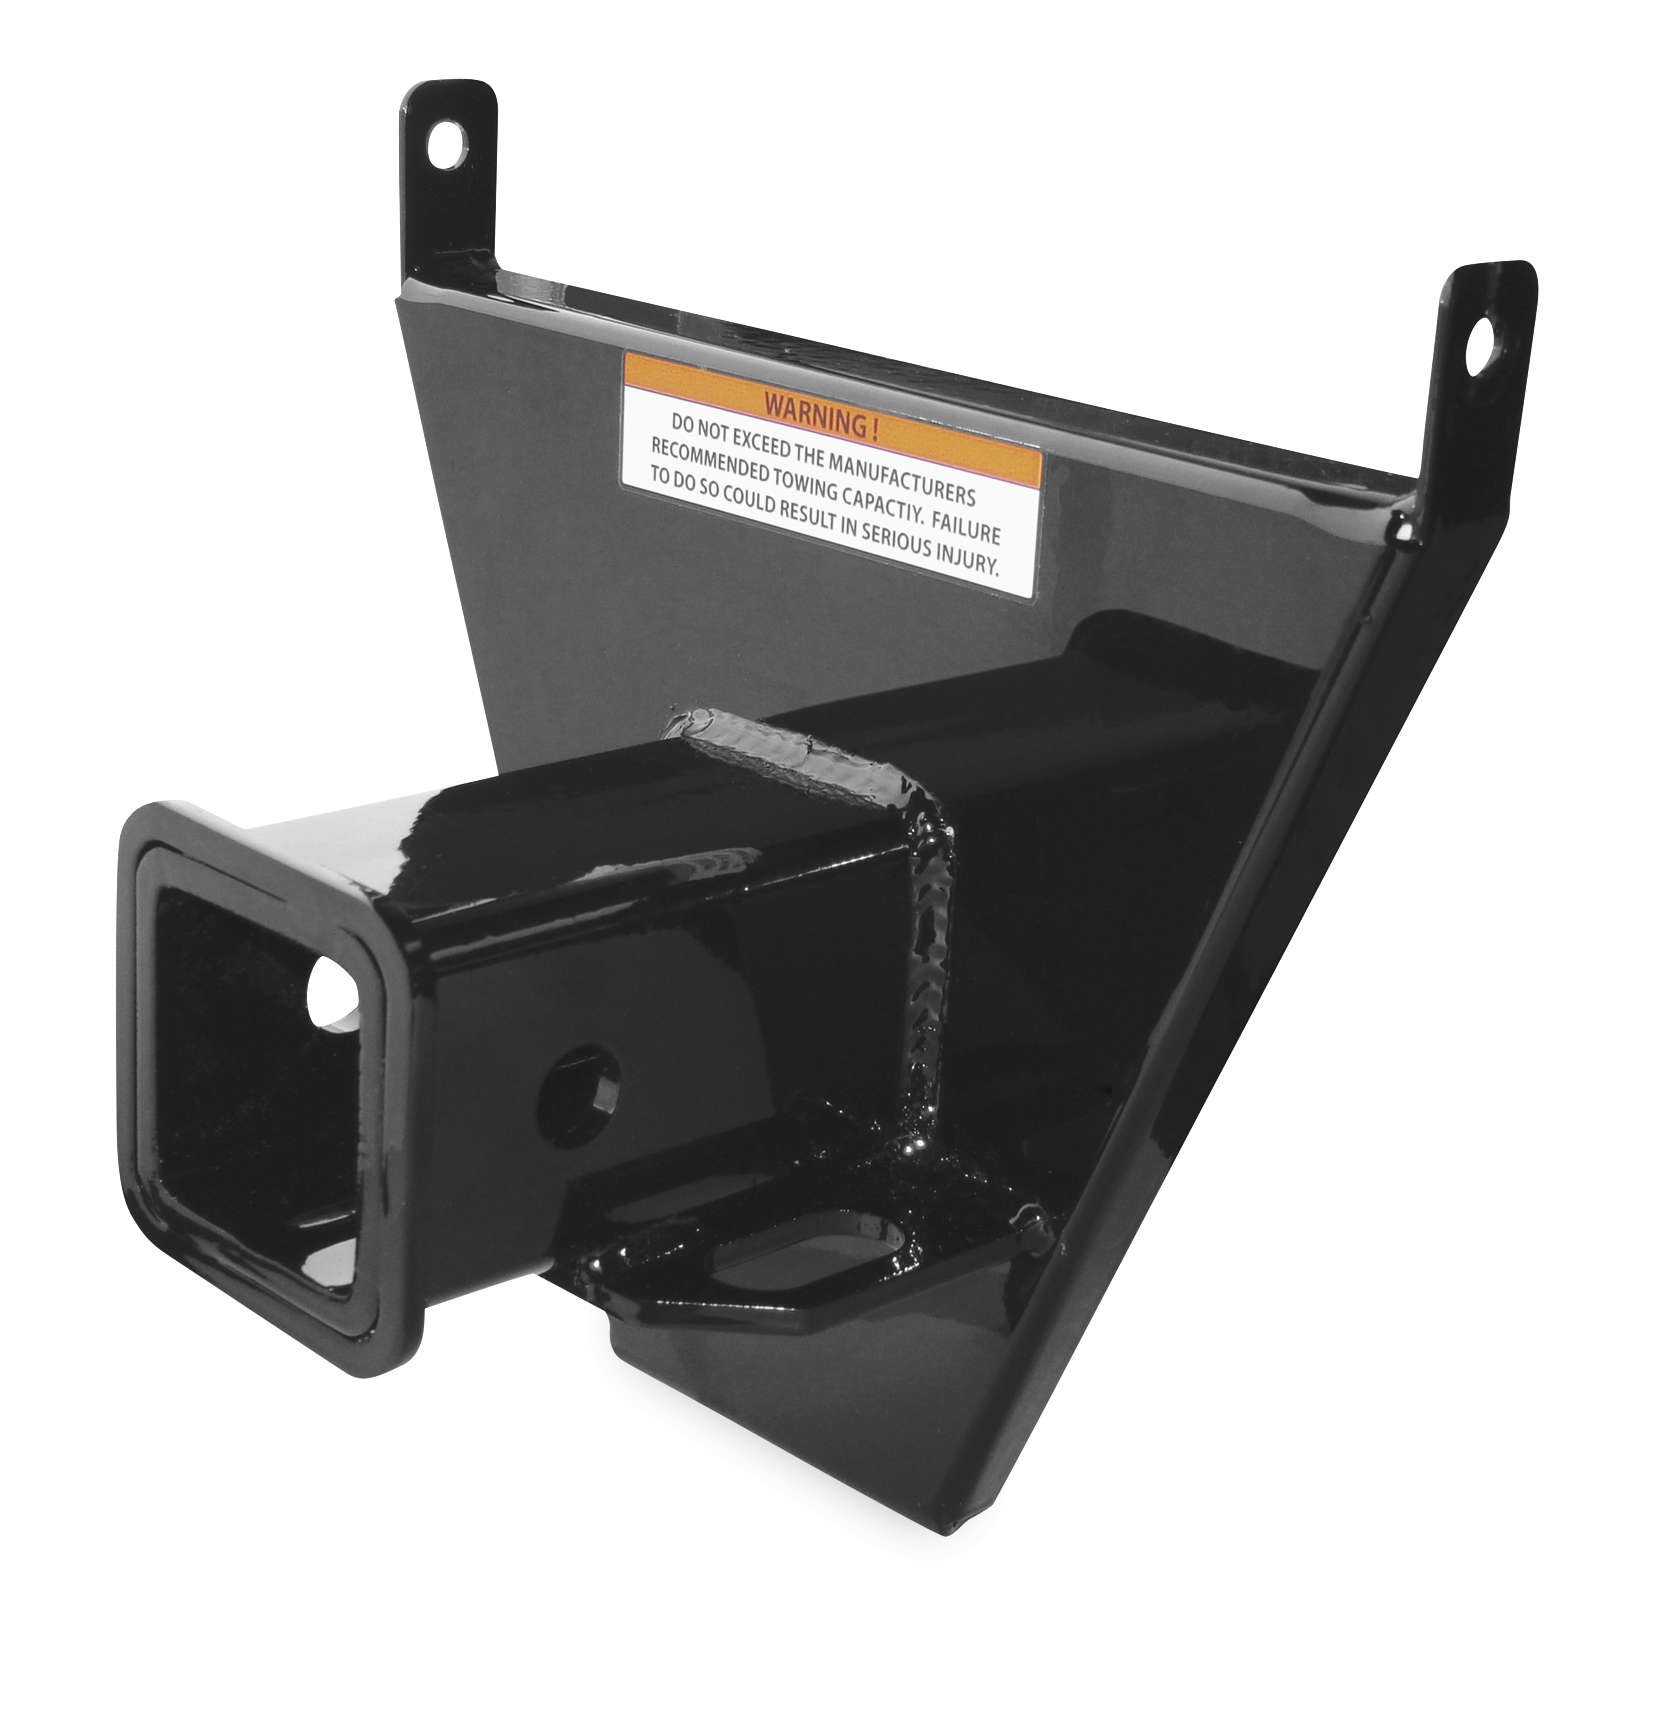 Quadboss 06-16 Honda RINCON680 Trailer Hitch Receiver (Rear) by Quadboss